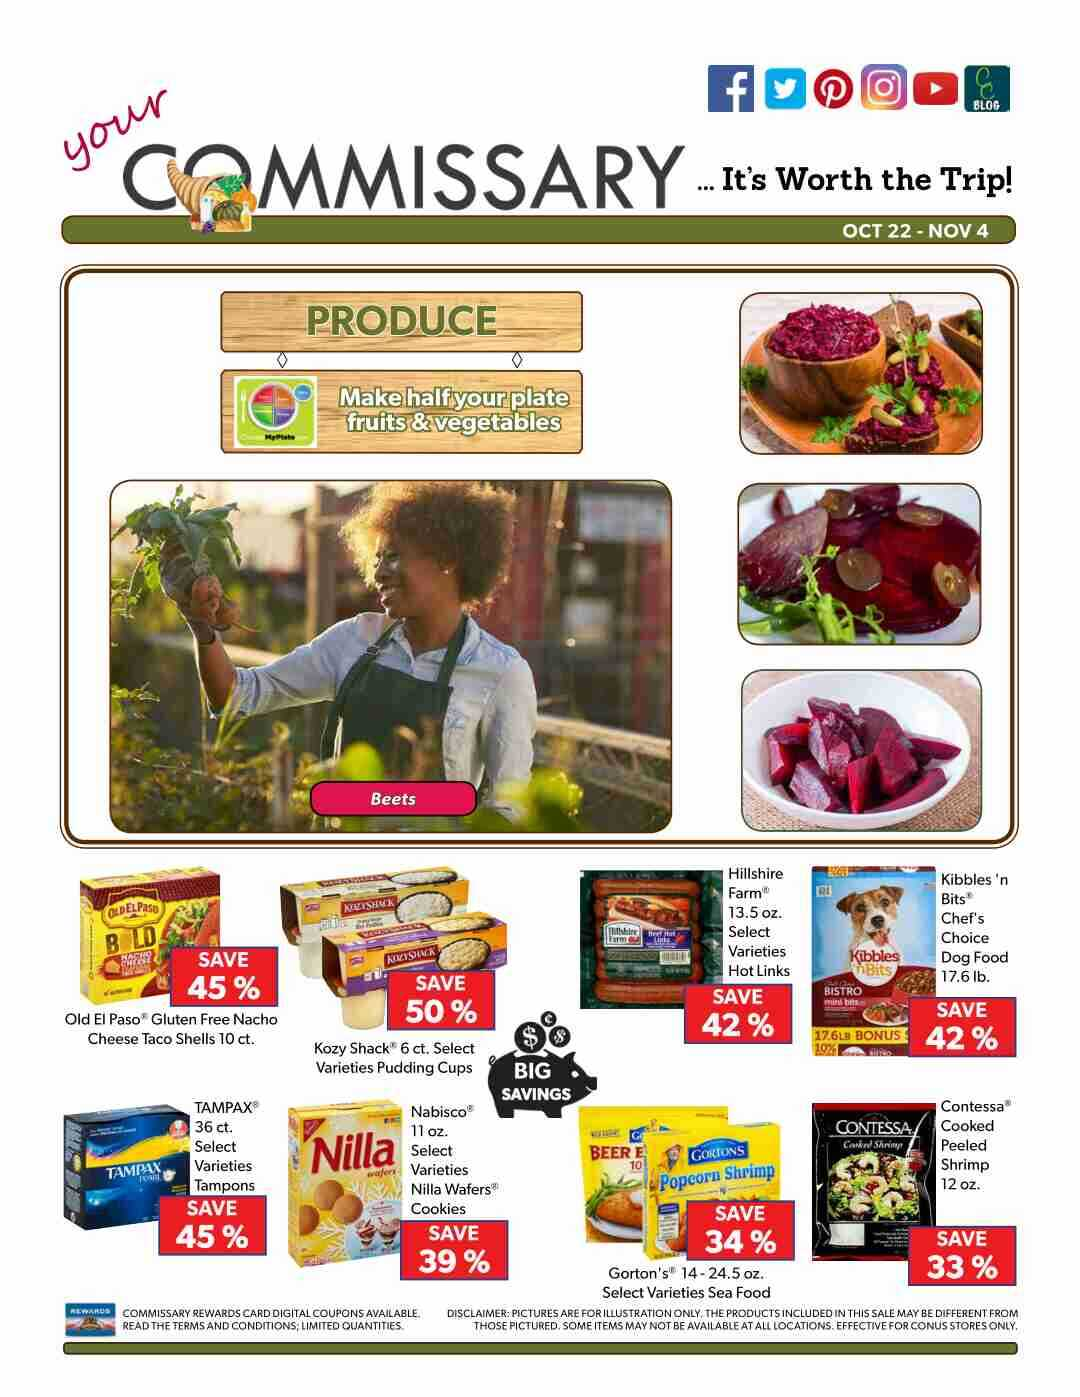 Offers commissary